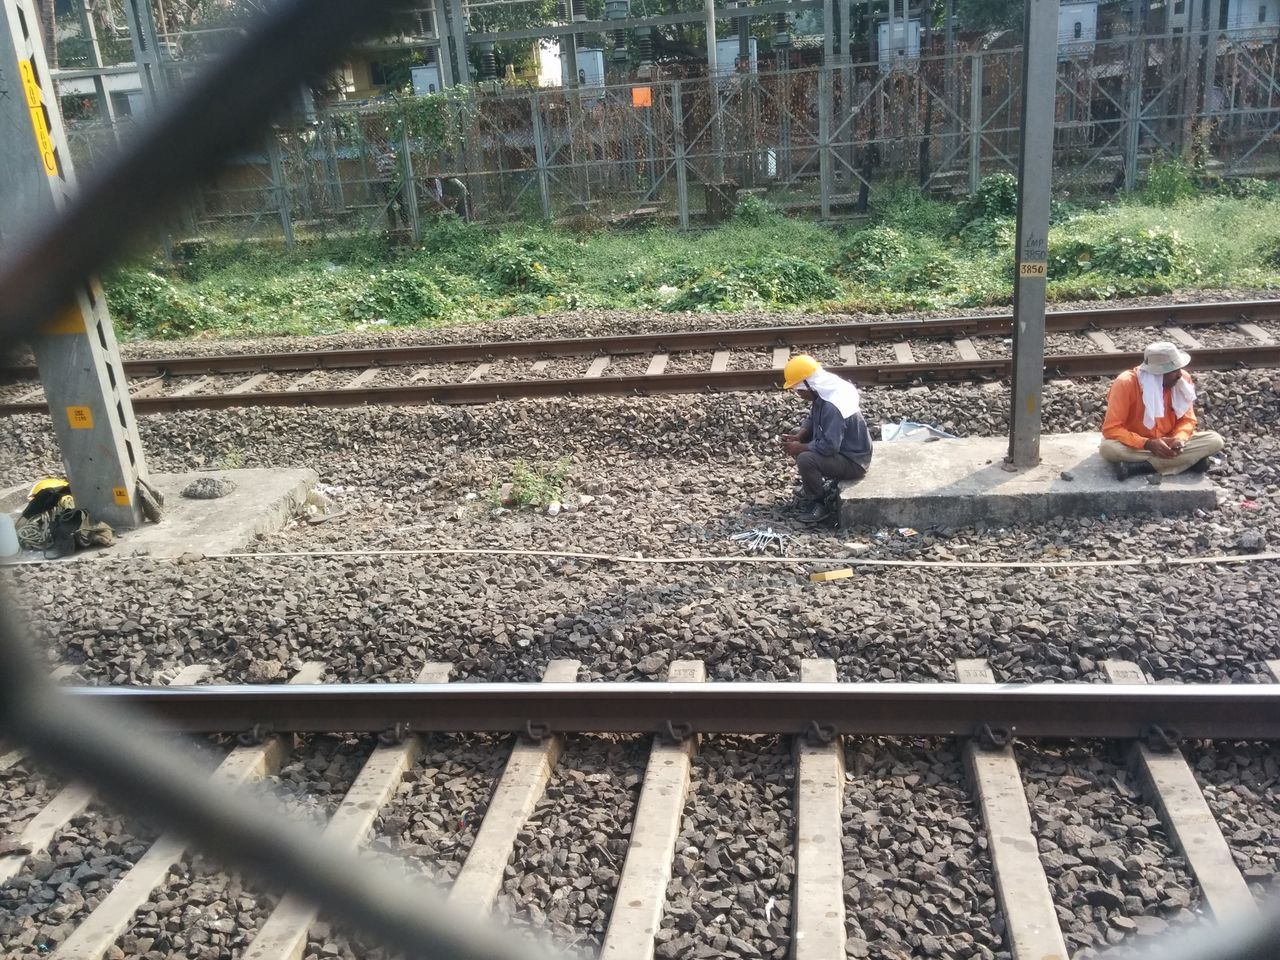 Man At Work On The Railway Track